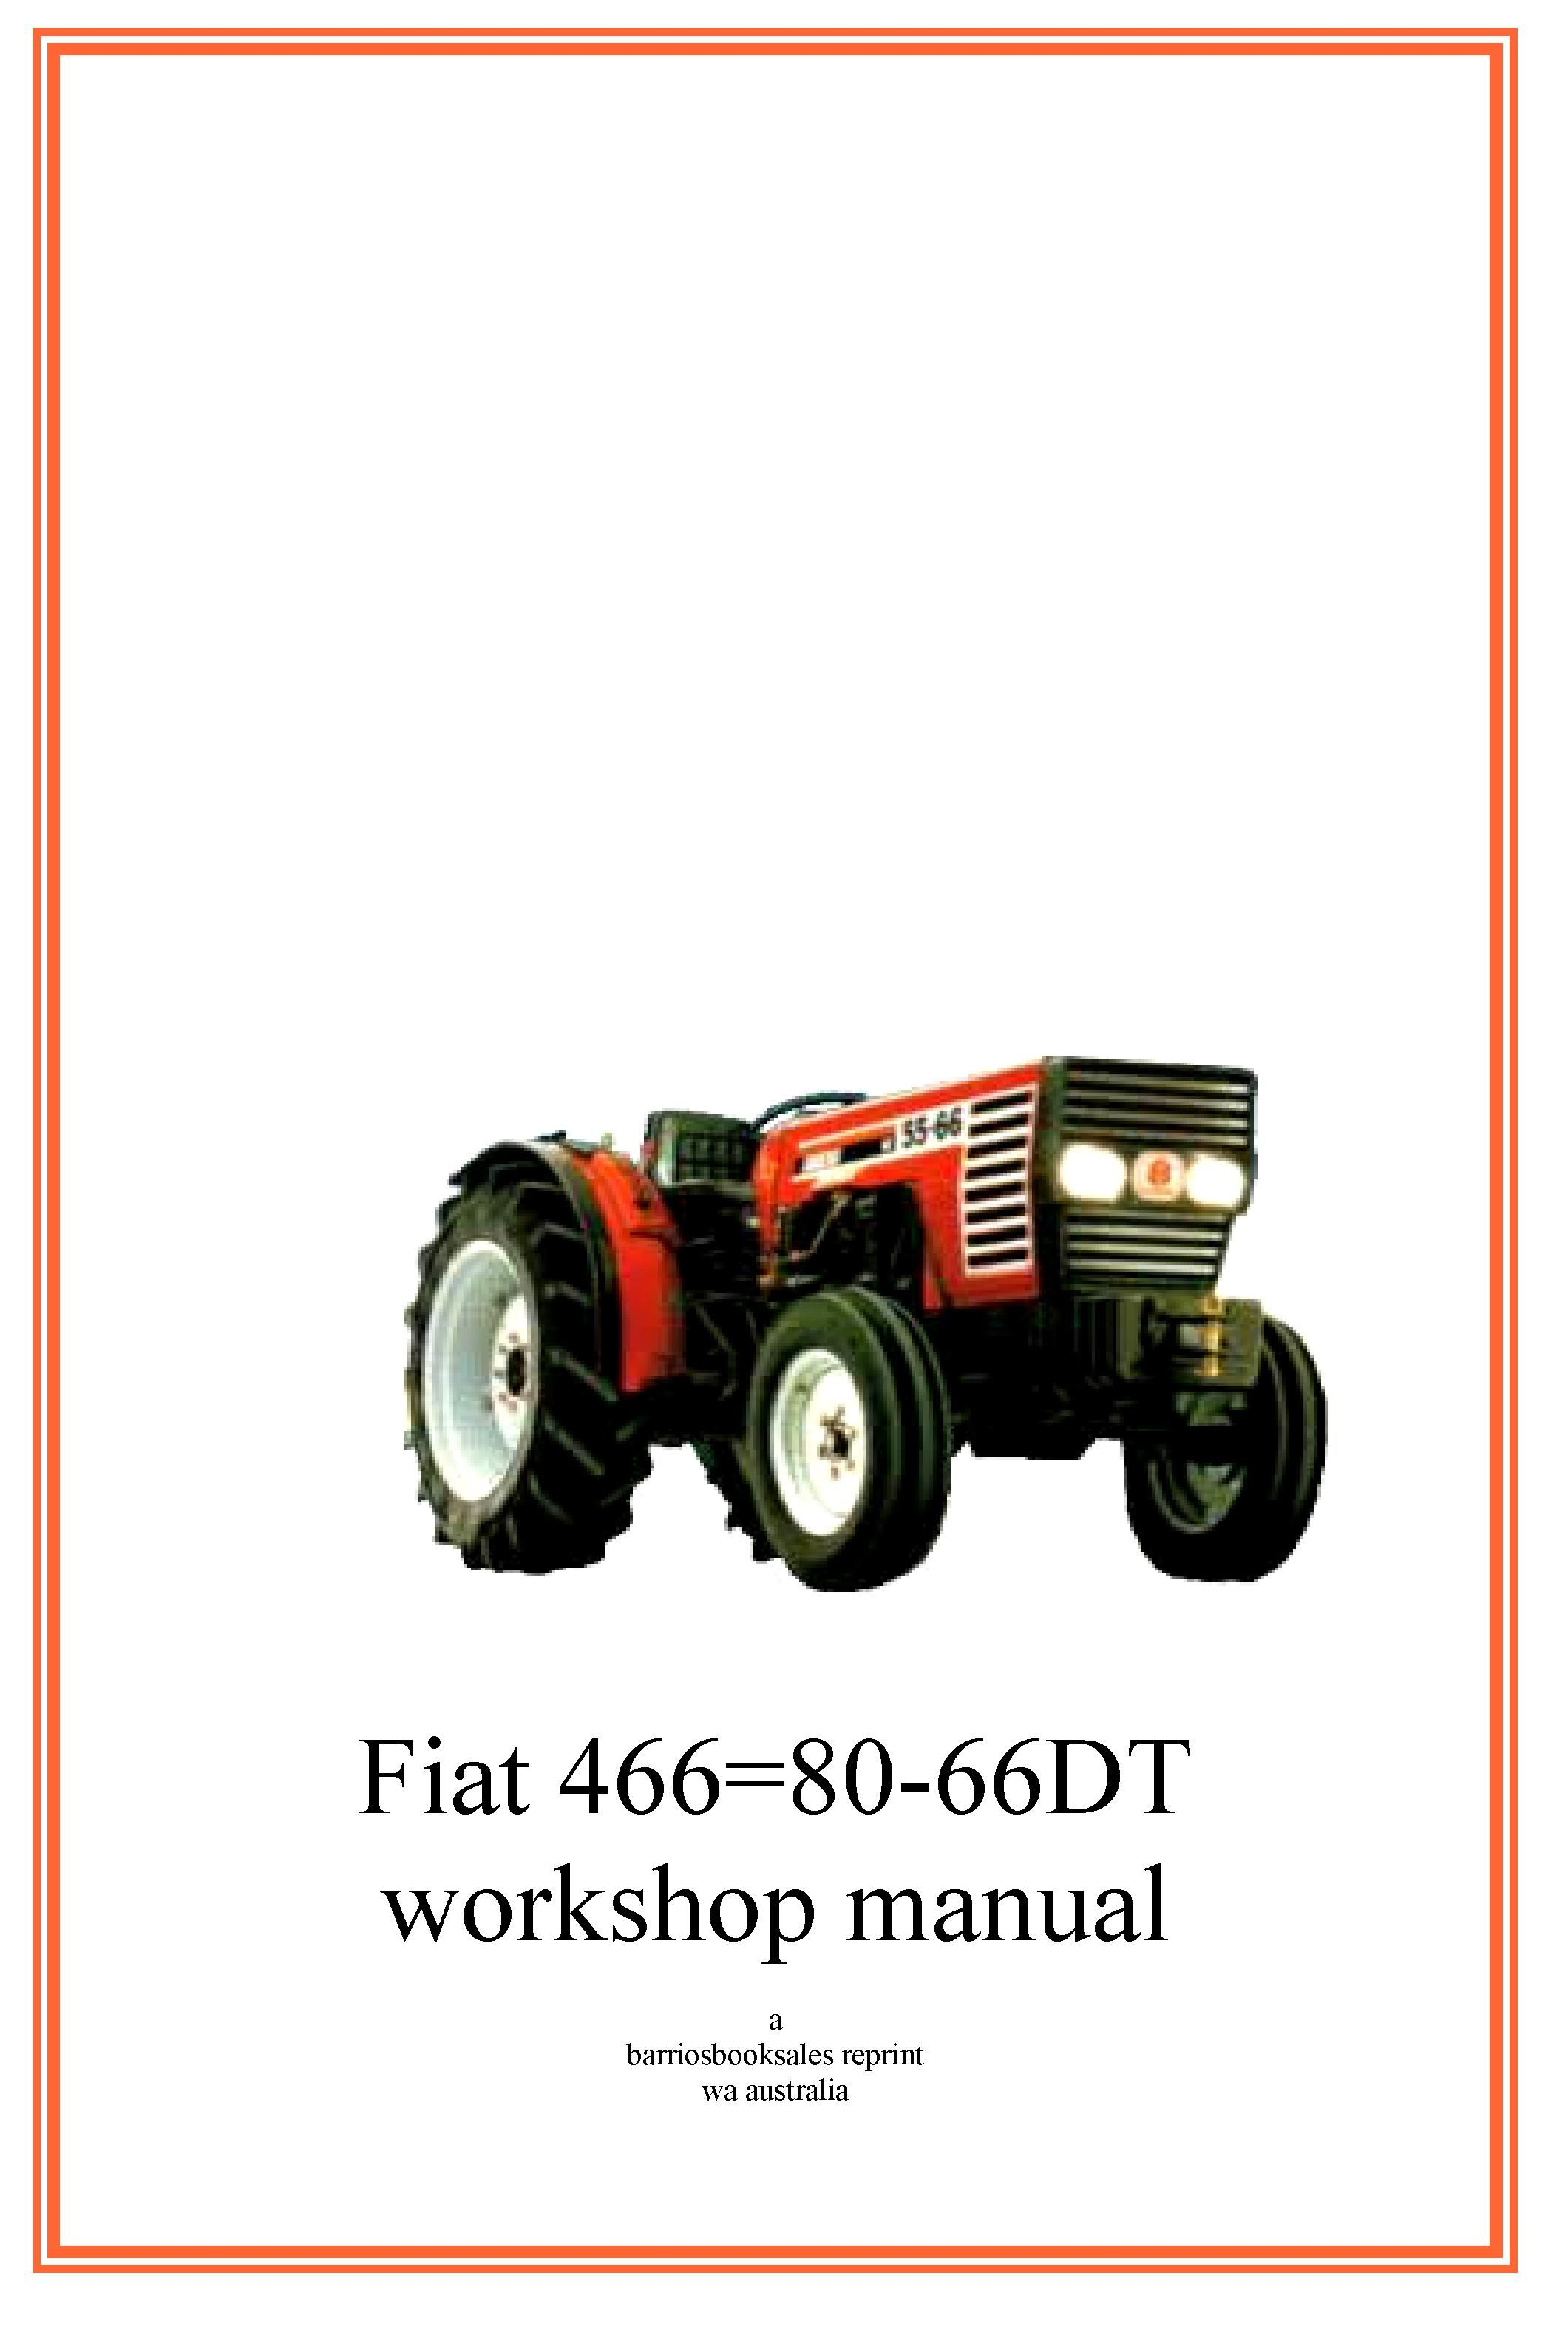 Pin by Tractor manuals downunder on Fiat tractor manuals to download    Pinterest   Fiat and Tractor